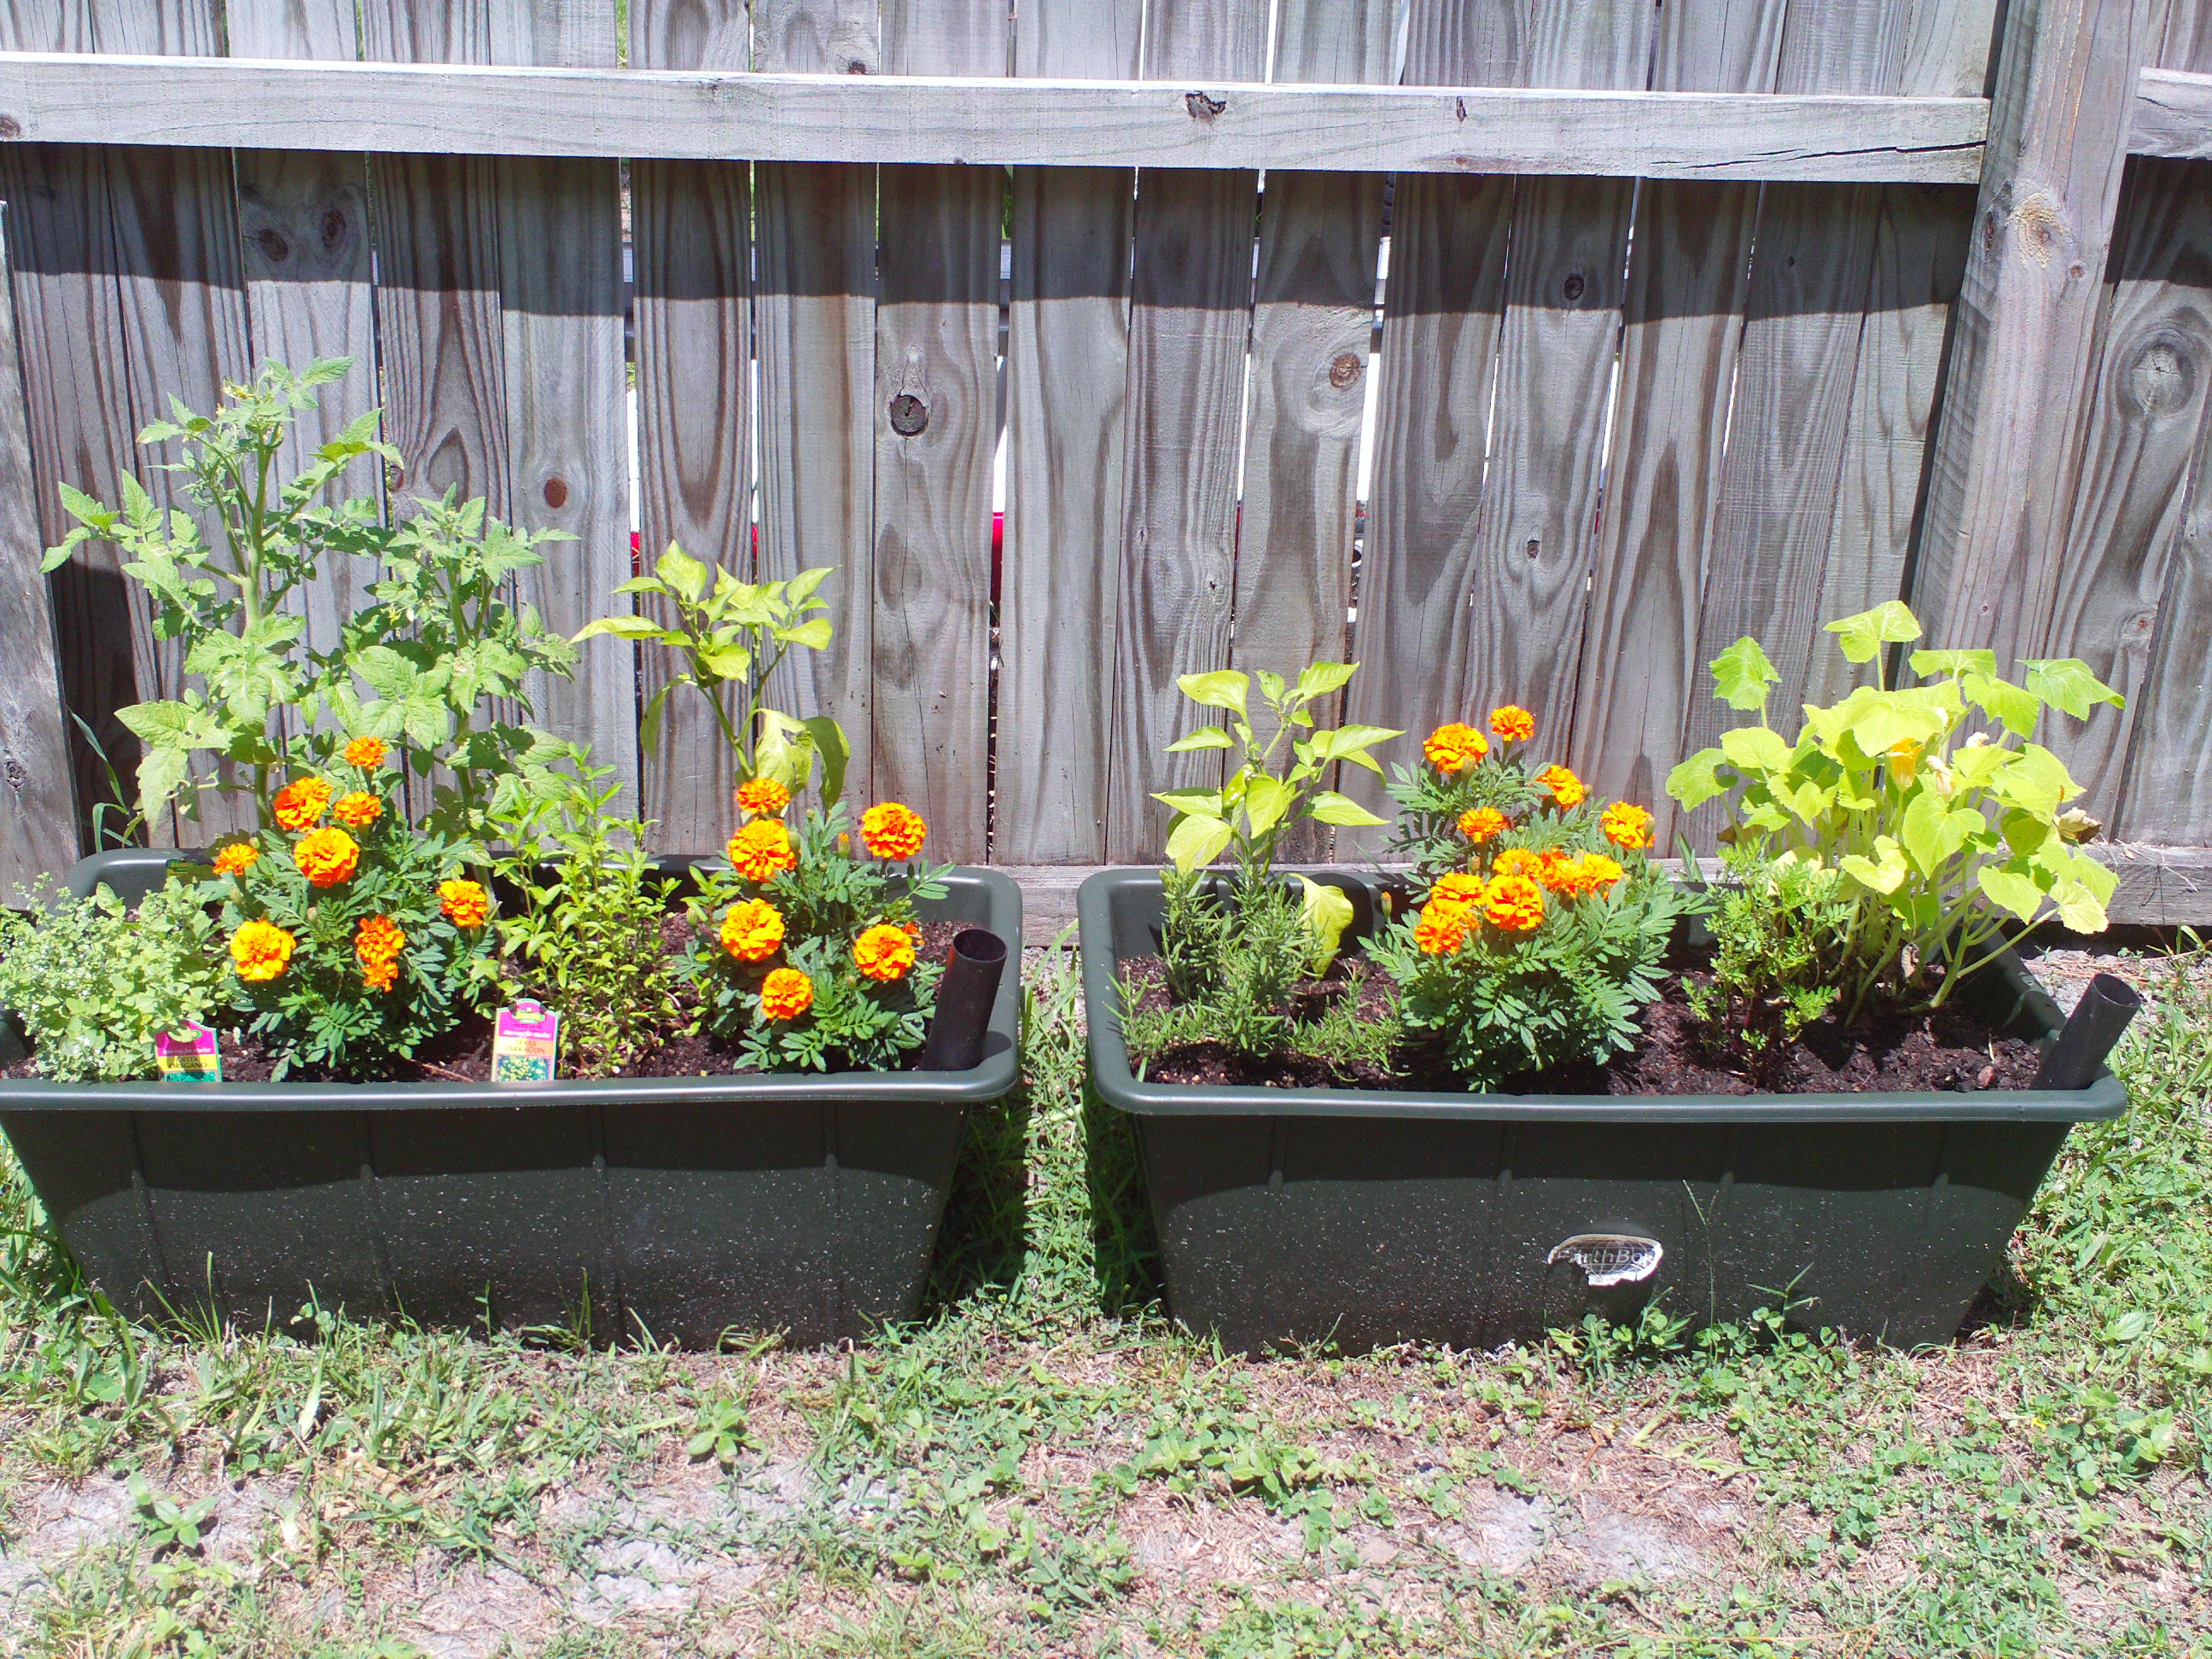 Small Food Garden - Container garden 6 2010 laurie sterbens